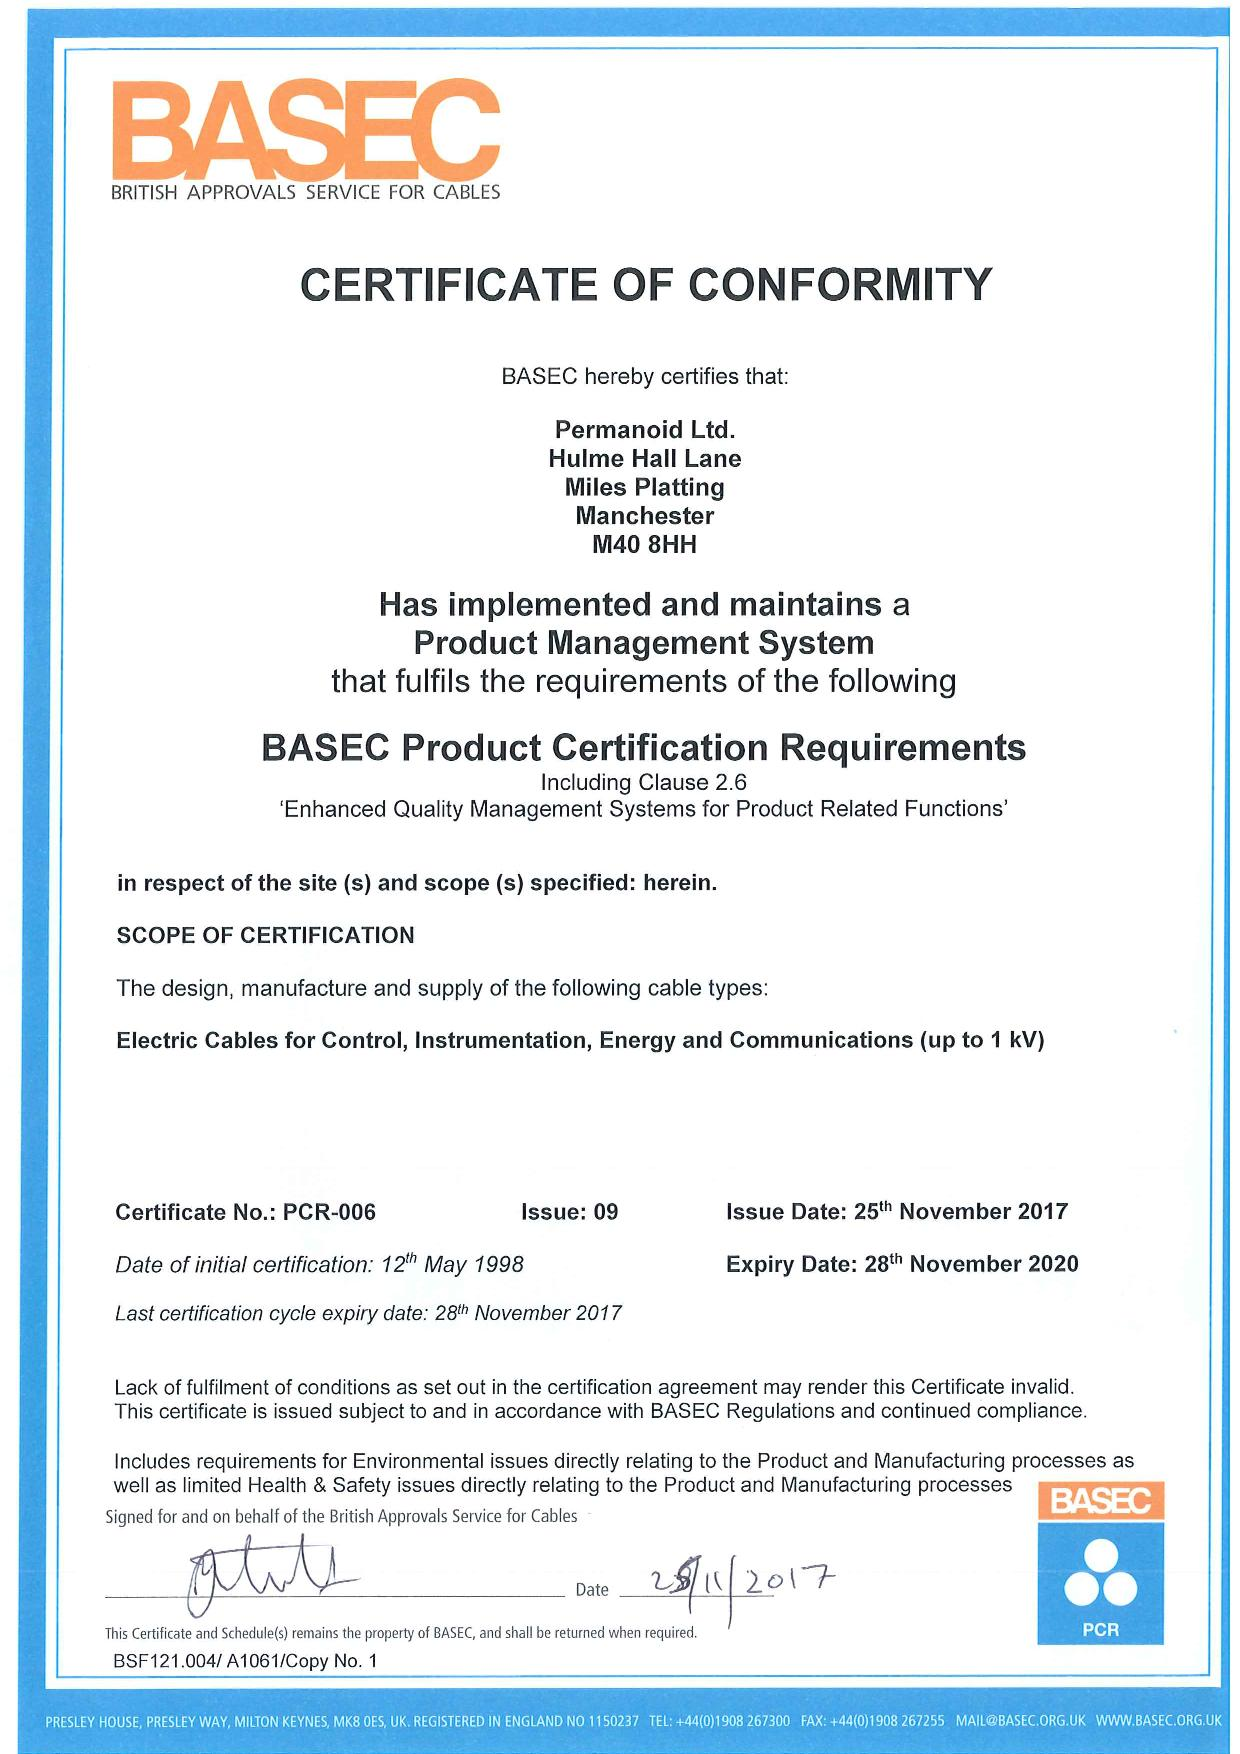 Pcr Certificate Permanoid Uk Cable And Wire Manufacturers